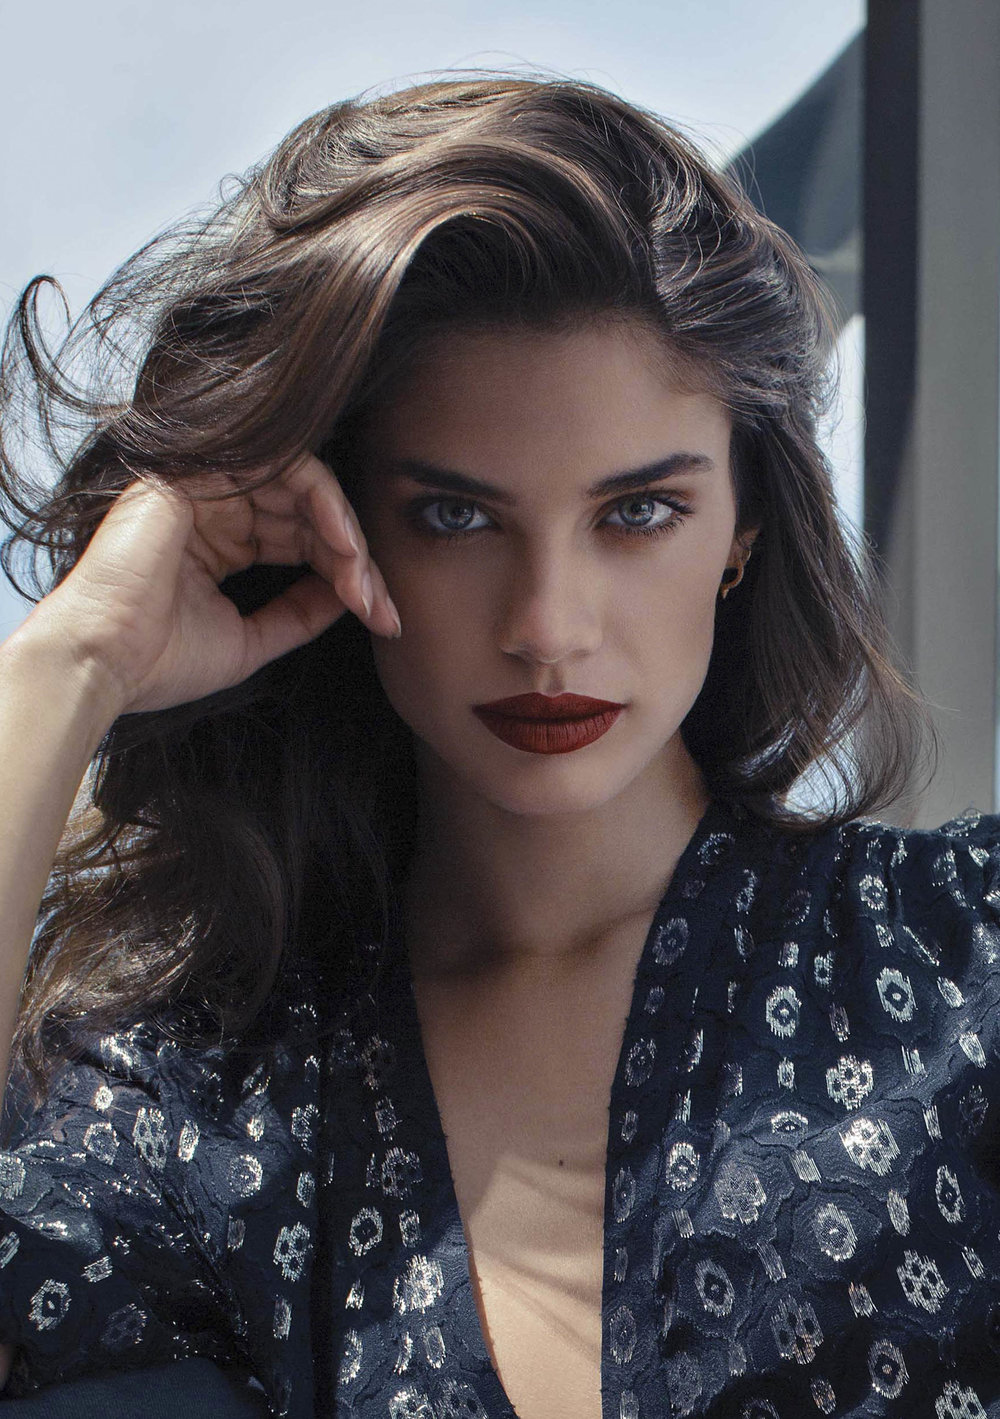 L'officiel VoyageFrance - Sara Sampaio 2015, October Issue